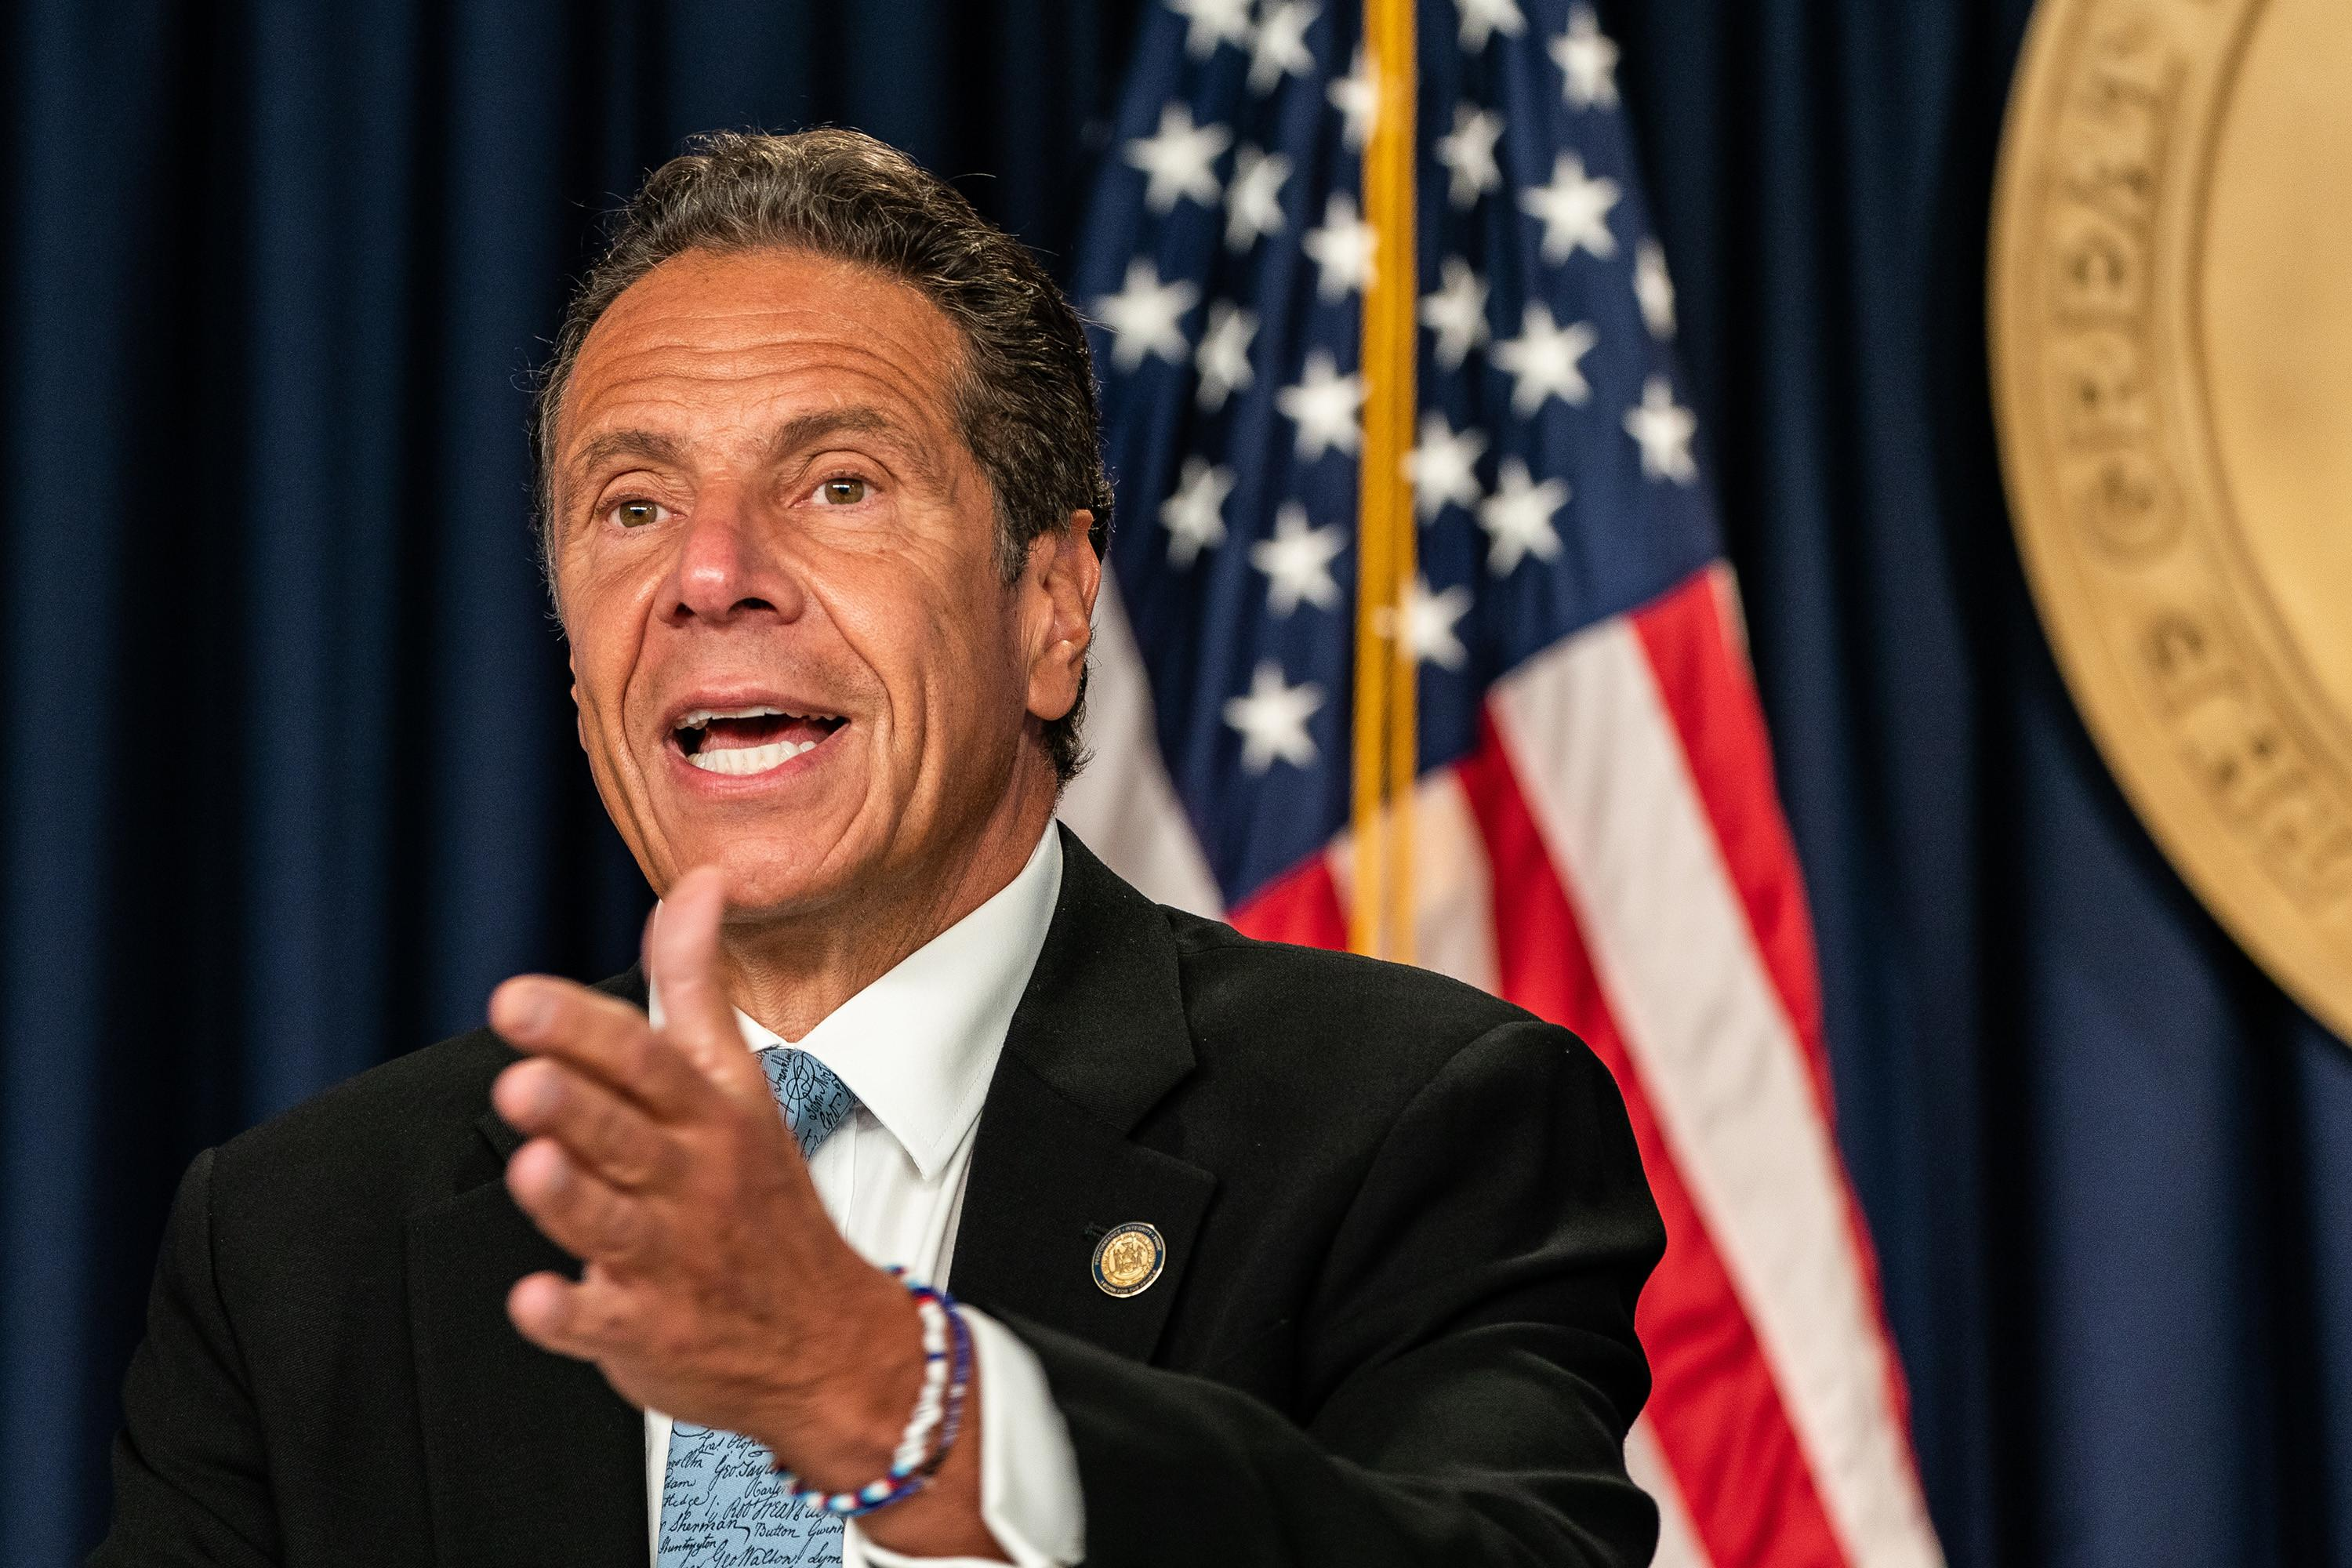 'Phased reopening continues to work': Cuomo says New York hit record low COVID-19 positivity rate in latest testing